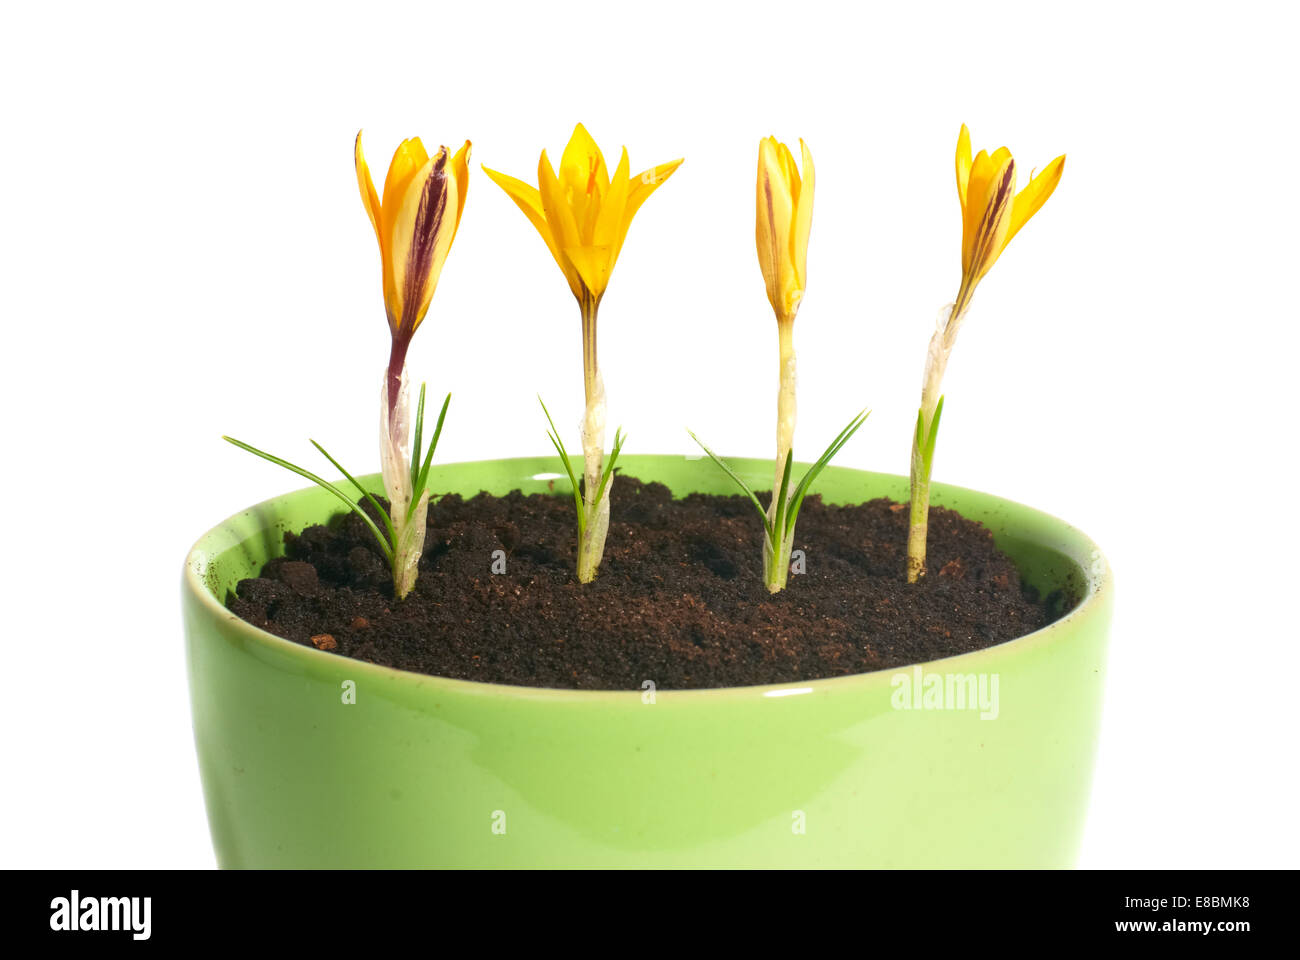 Yellow Flowers Saffron Crocus Sativus With Green Leaves In The